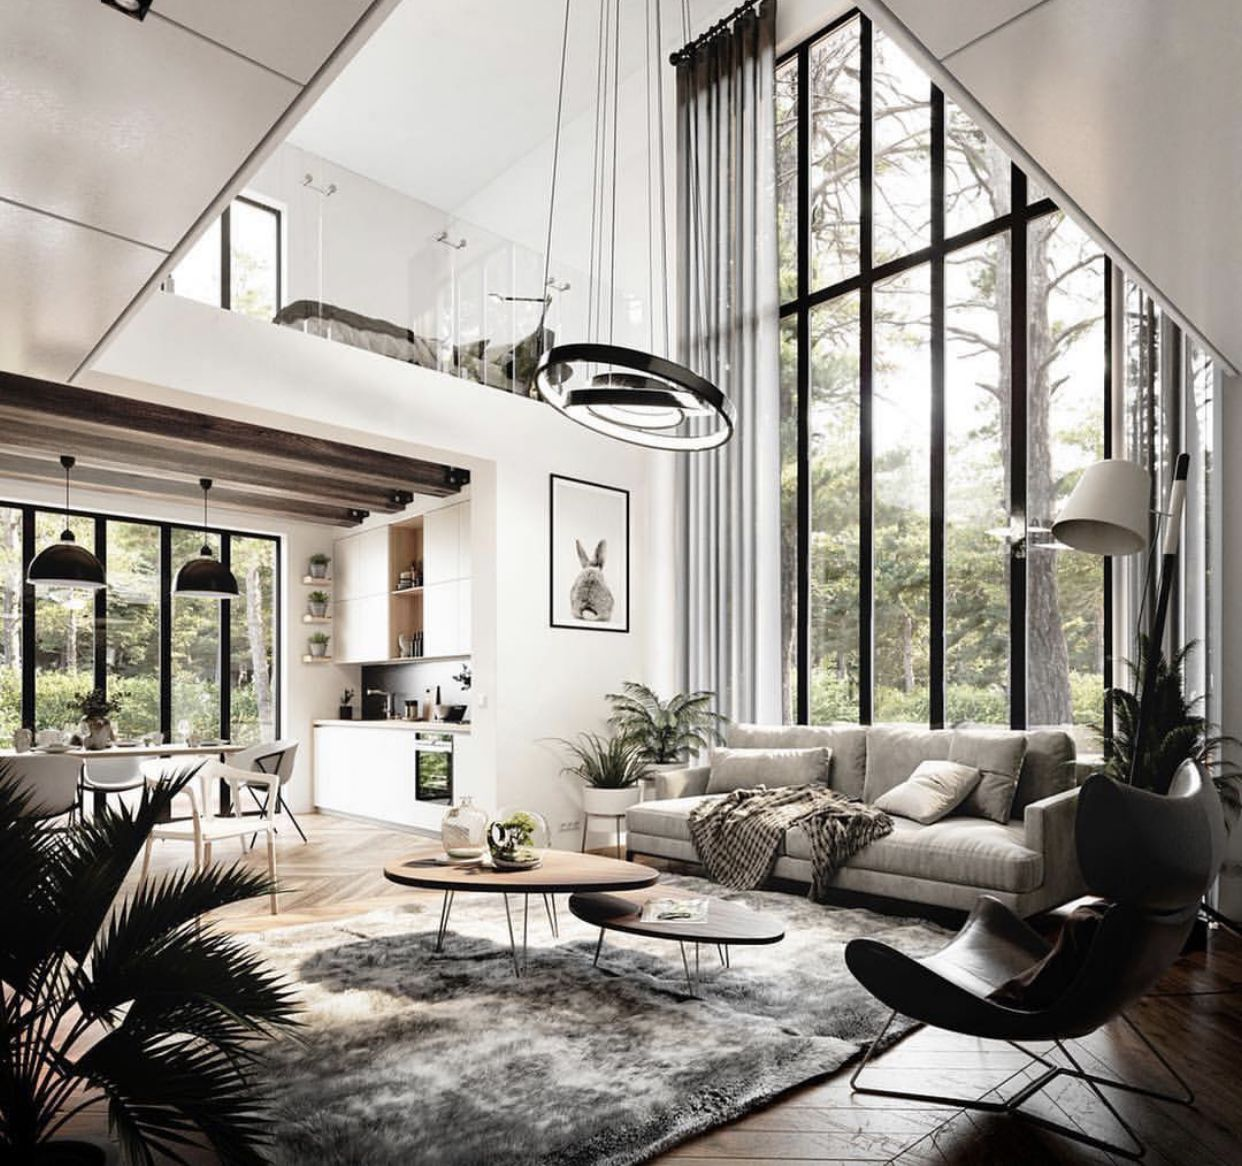 The Amazingly Tall Windows The Lighting Fixture And The Contemporary Design Style Contemporary Decor Living Room Modern Houses Interior Home Decor Trends